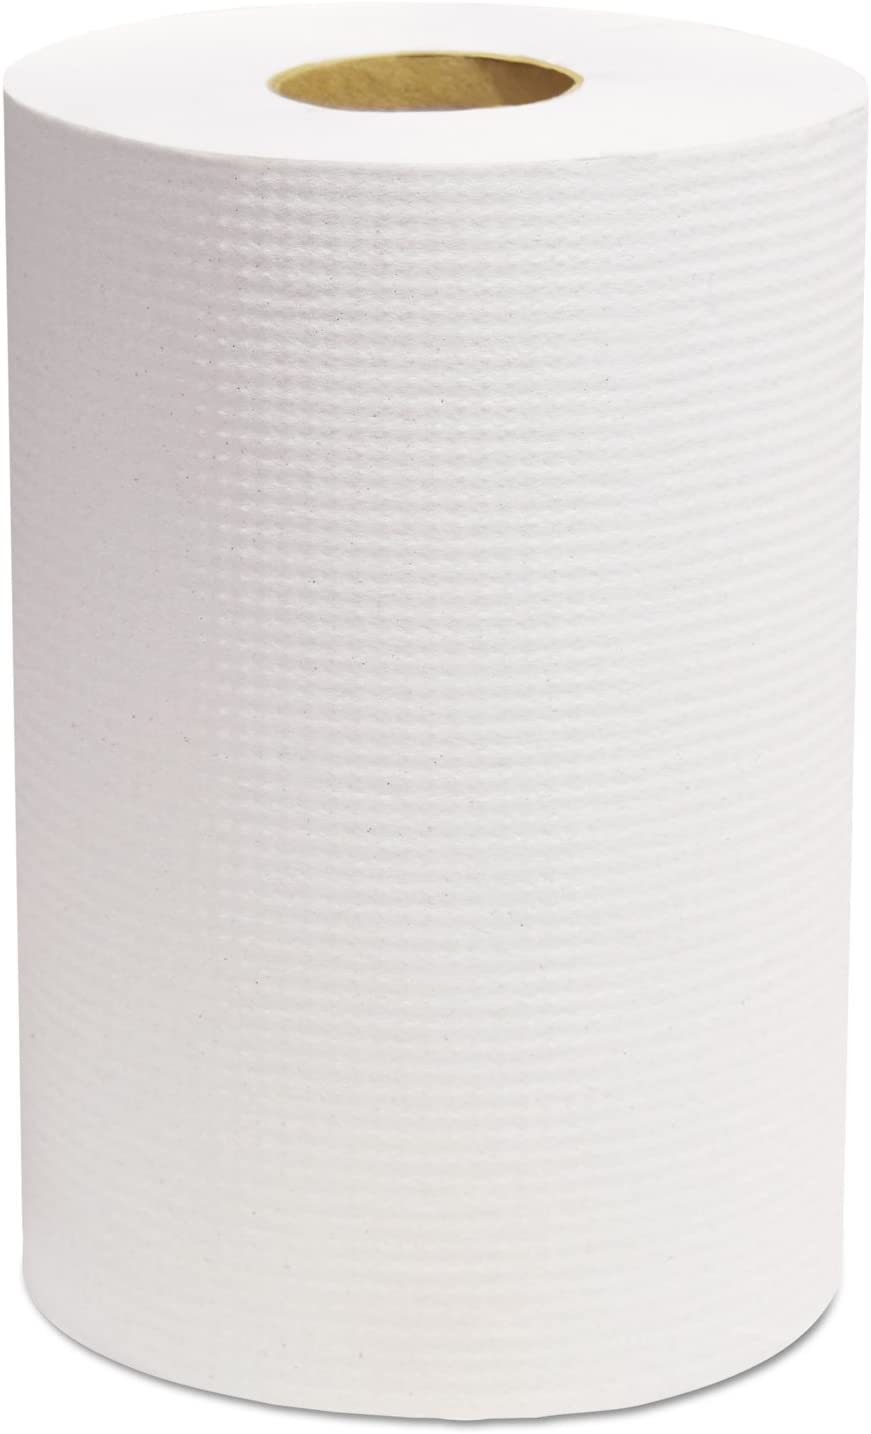 Cascades PRO H230 Select Roll Paper Towels, White, 7 7/8-Inch x 350 ft, 12/Carton